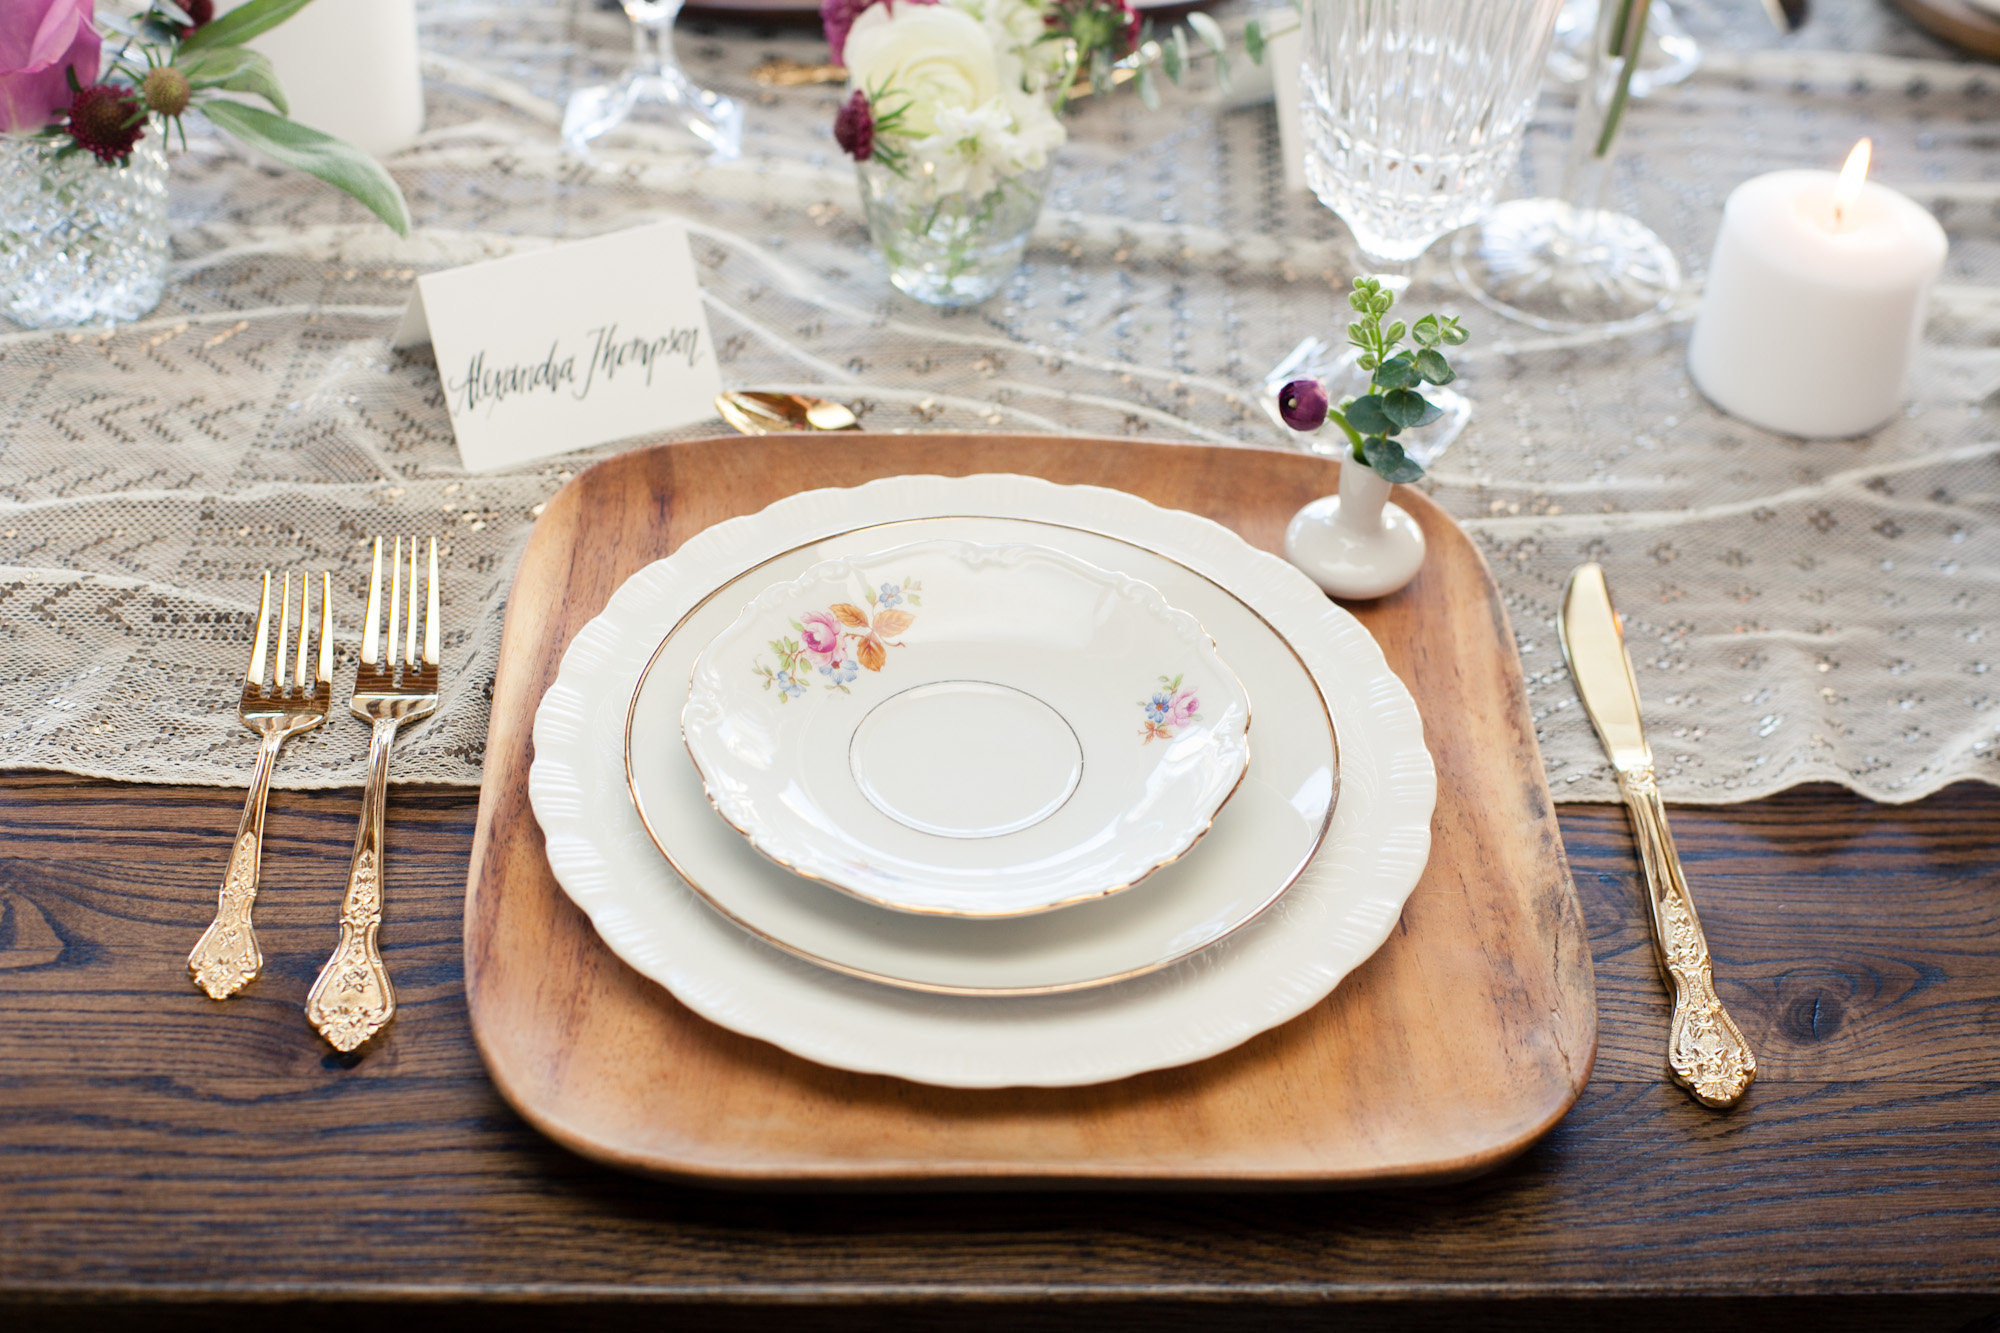 A fun idea to identify the bride and groom's seats amongst guests is to add a floral element to their seats.